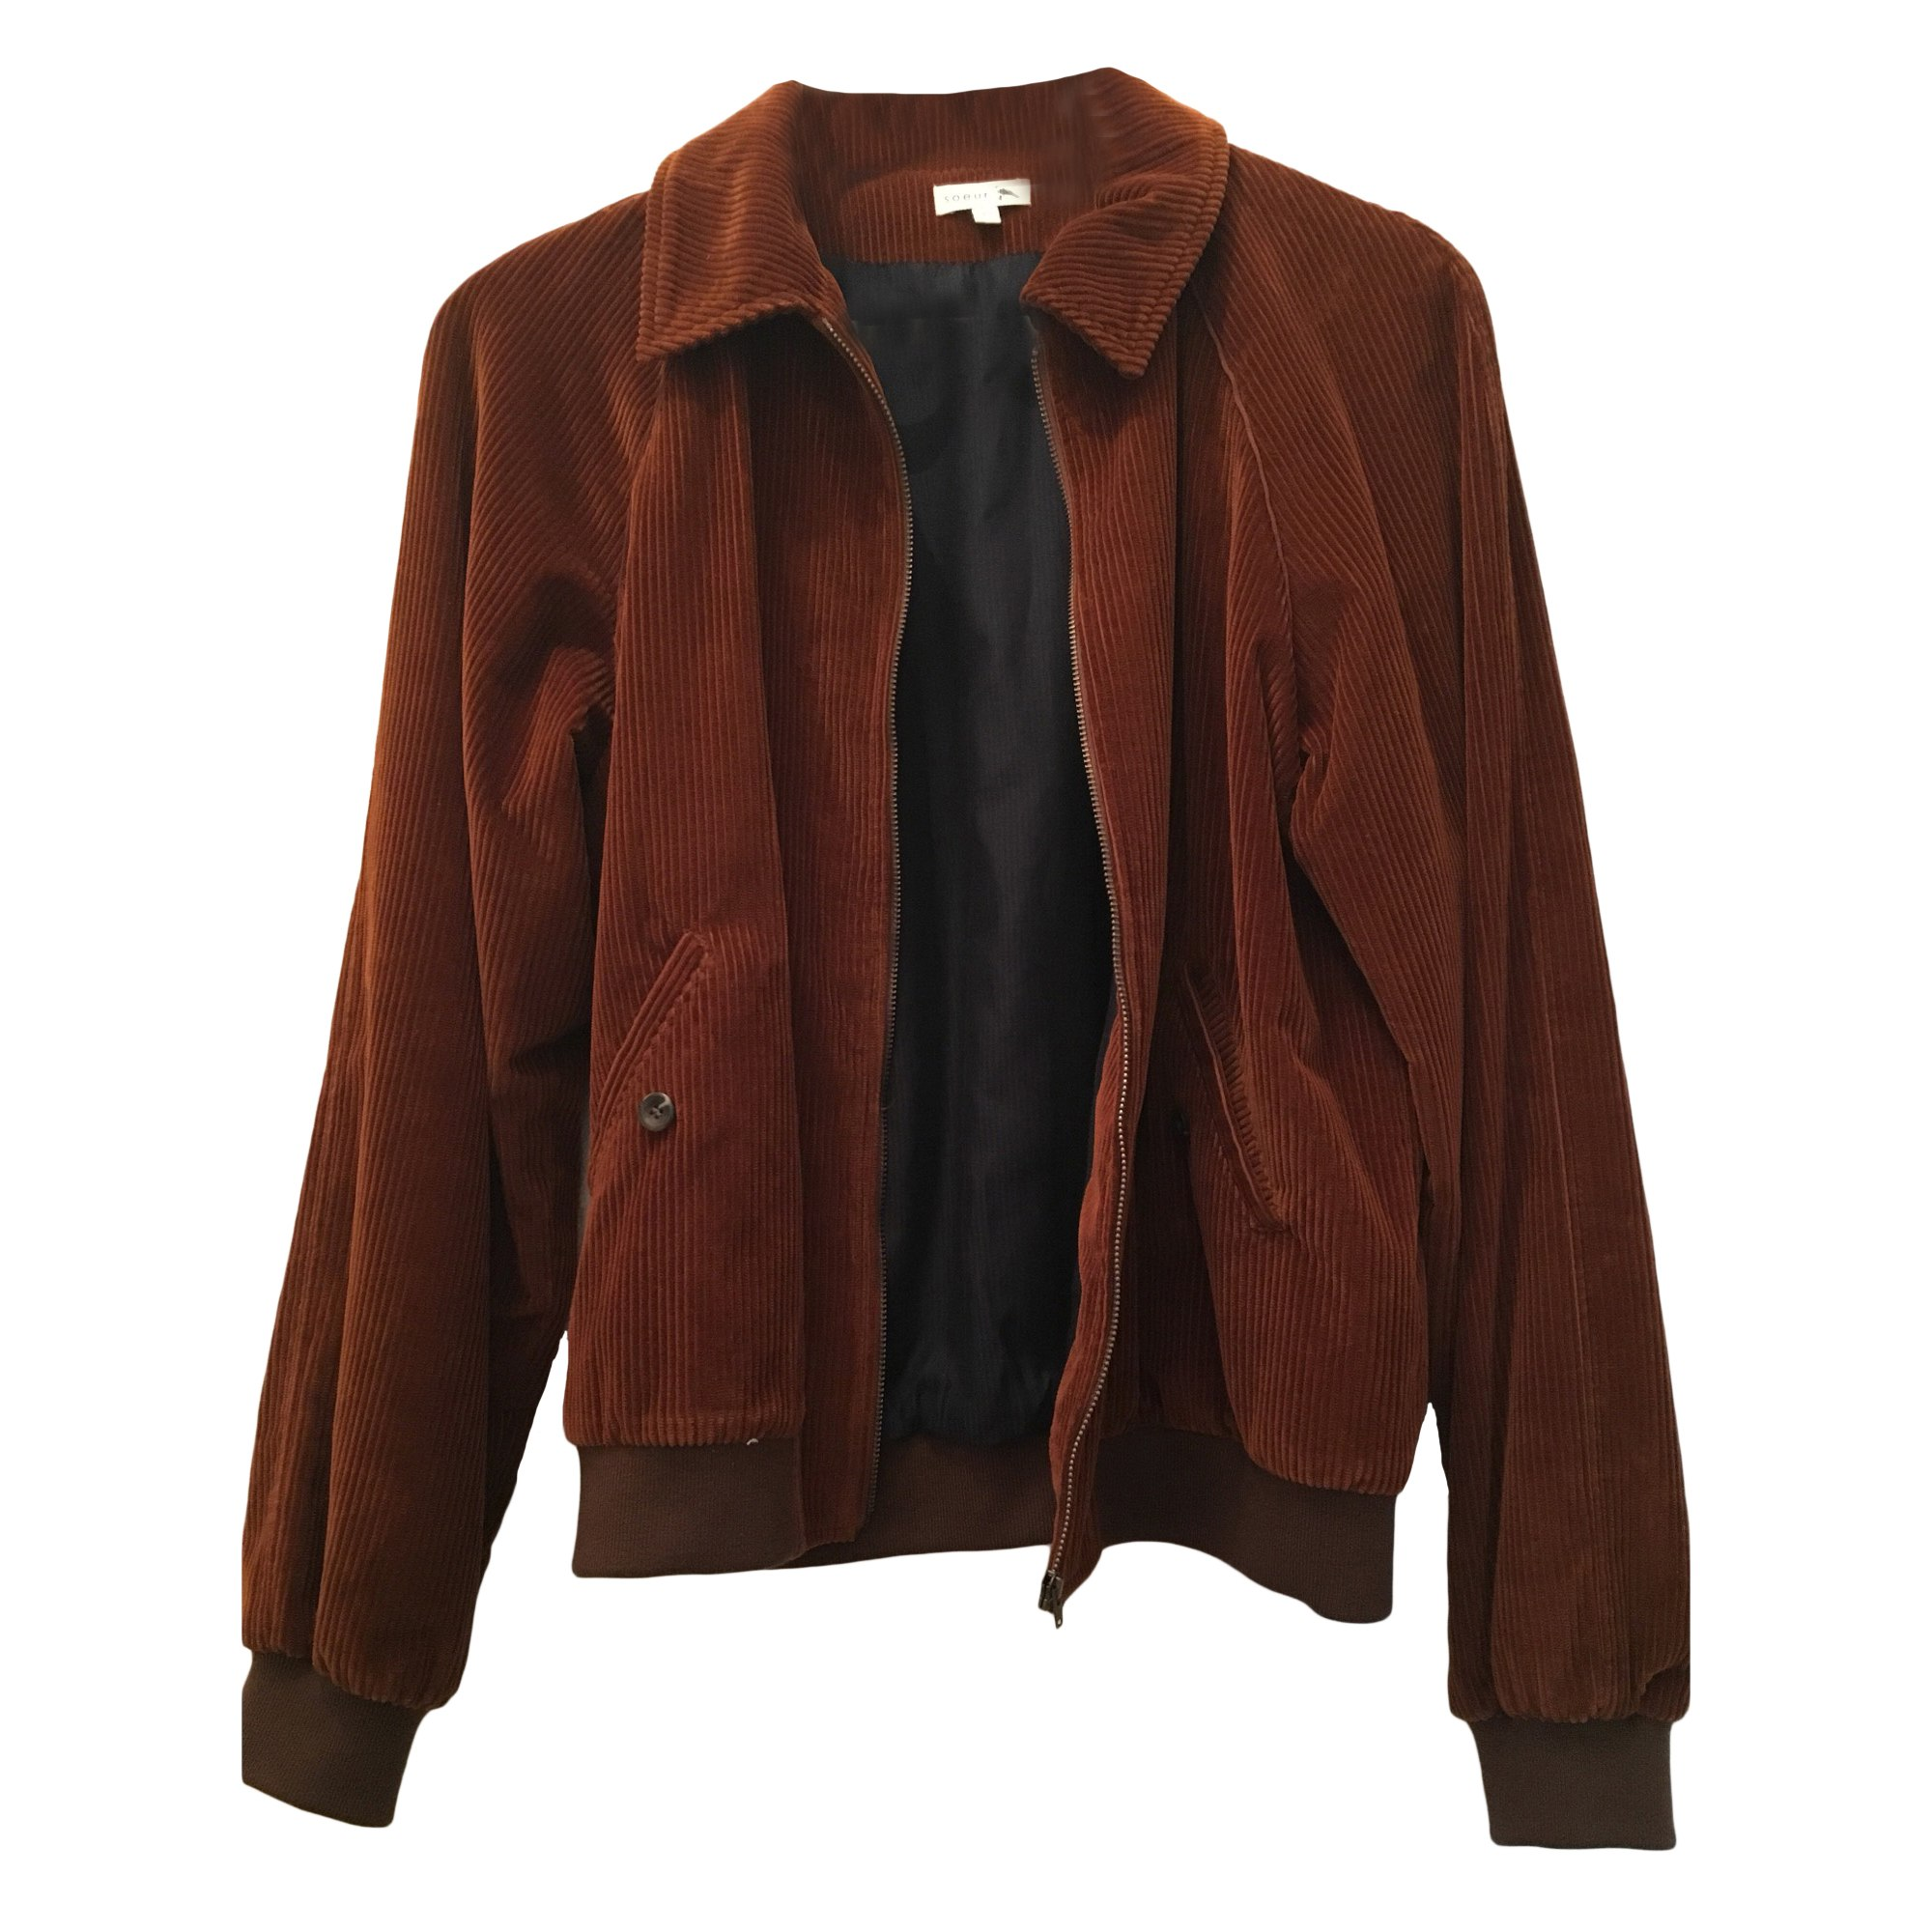 Zipped Jacket SOEUR Brown